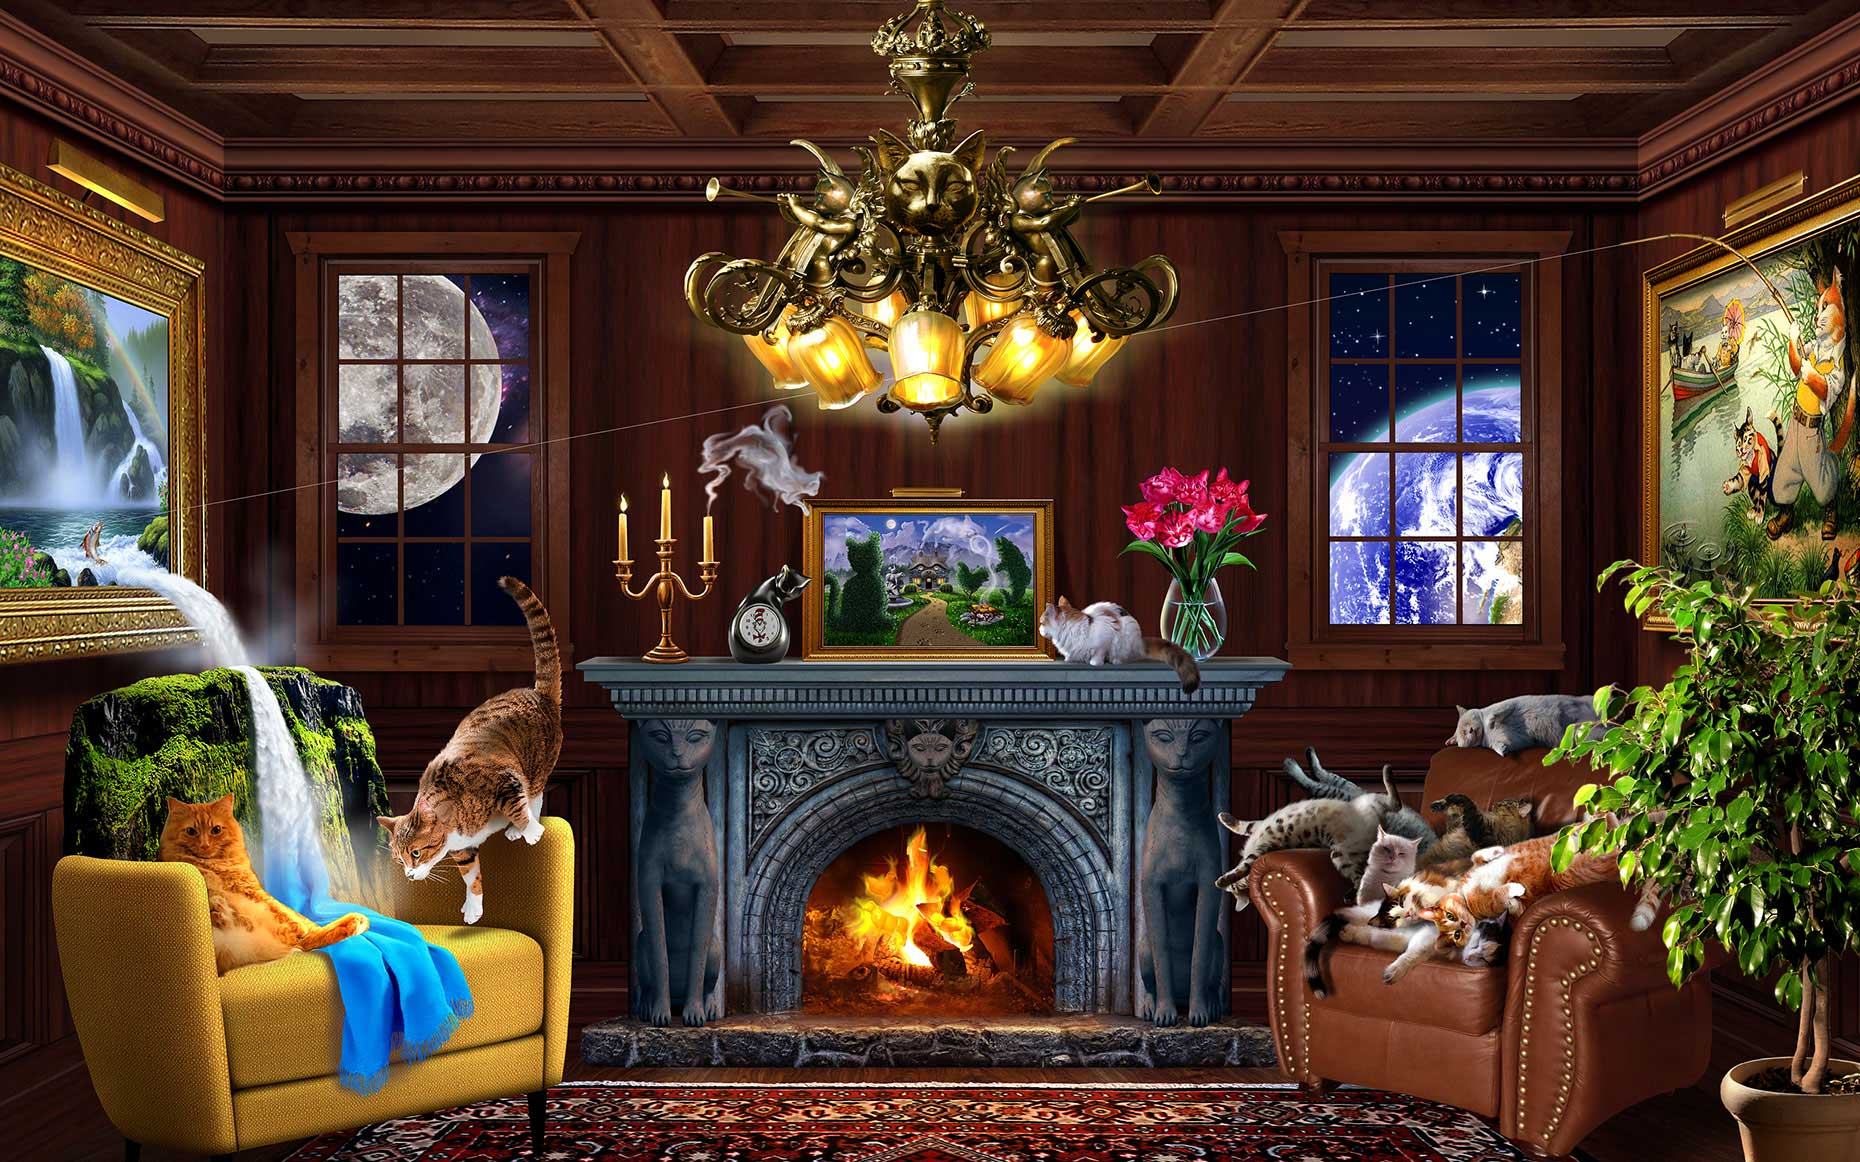 illustration-Photo-Imaging_Animals-and-Nature_Friskies-living-room-Jerry-LoFaro